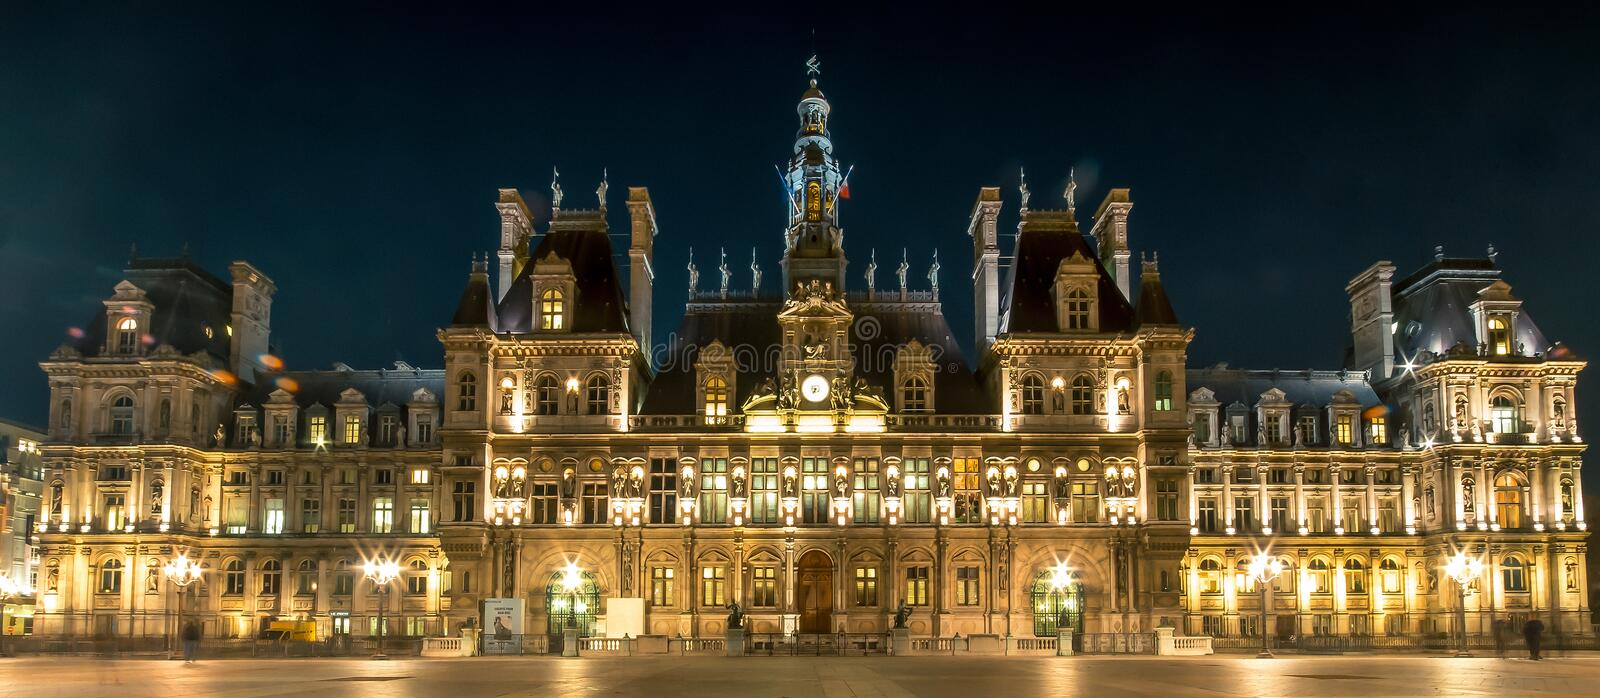 hotel de ville la nuit paris france cityhall image stock image du ville nuit 76285157. Black Bedroom Furniture Sets. Home Design Ideas